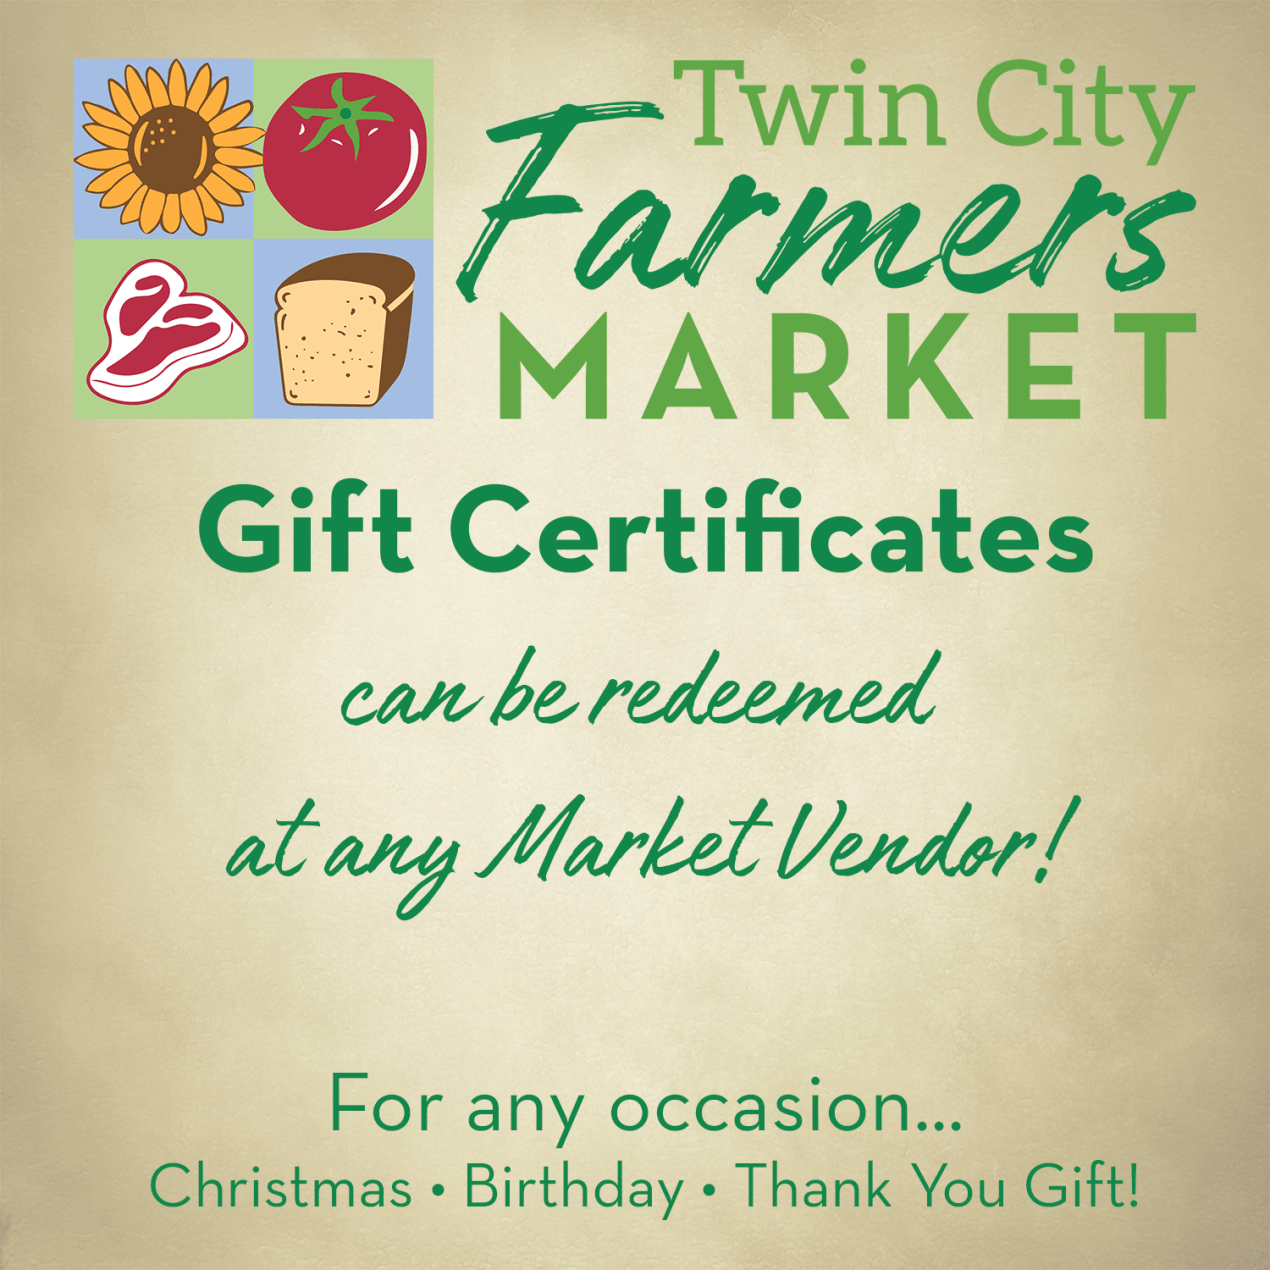 Gift Certificate for Twin City Farmers Market